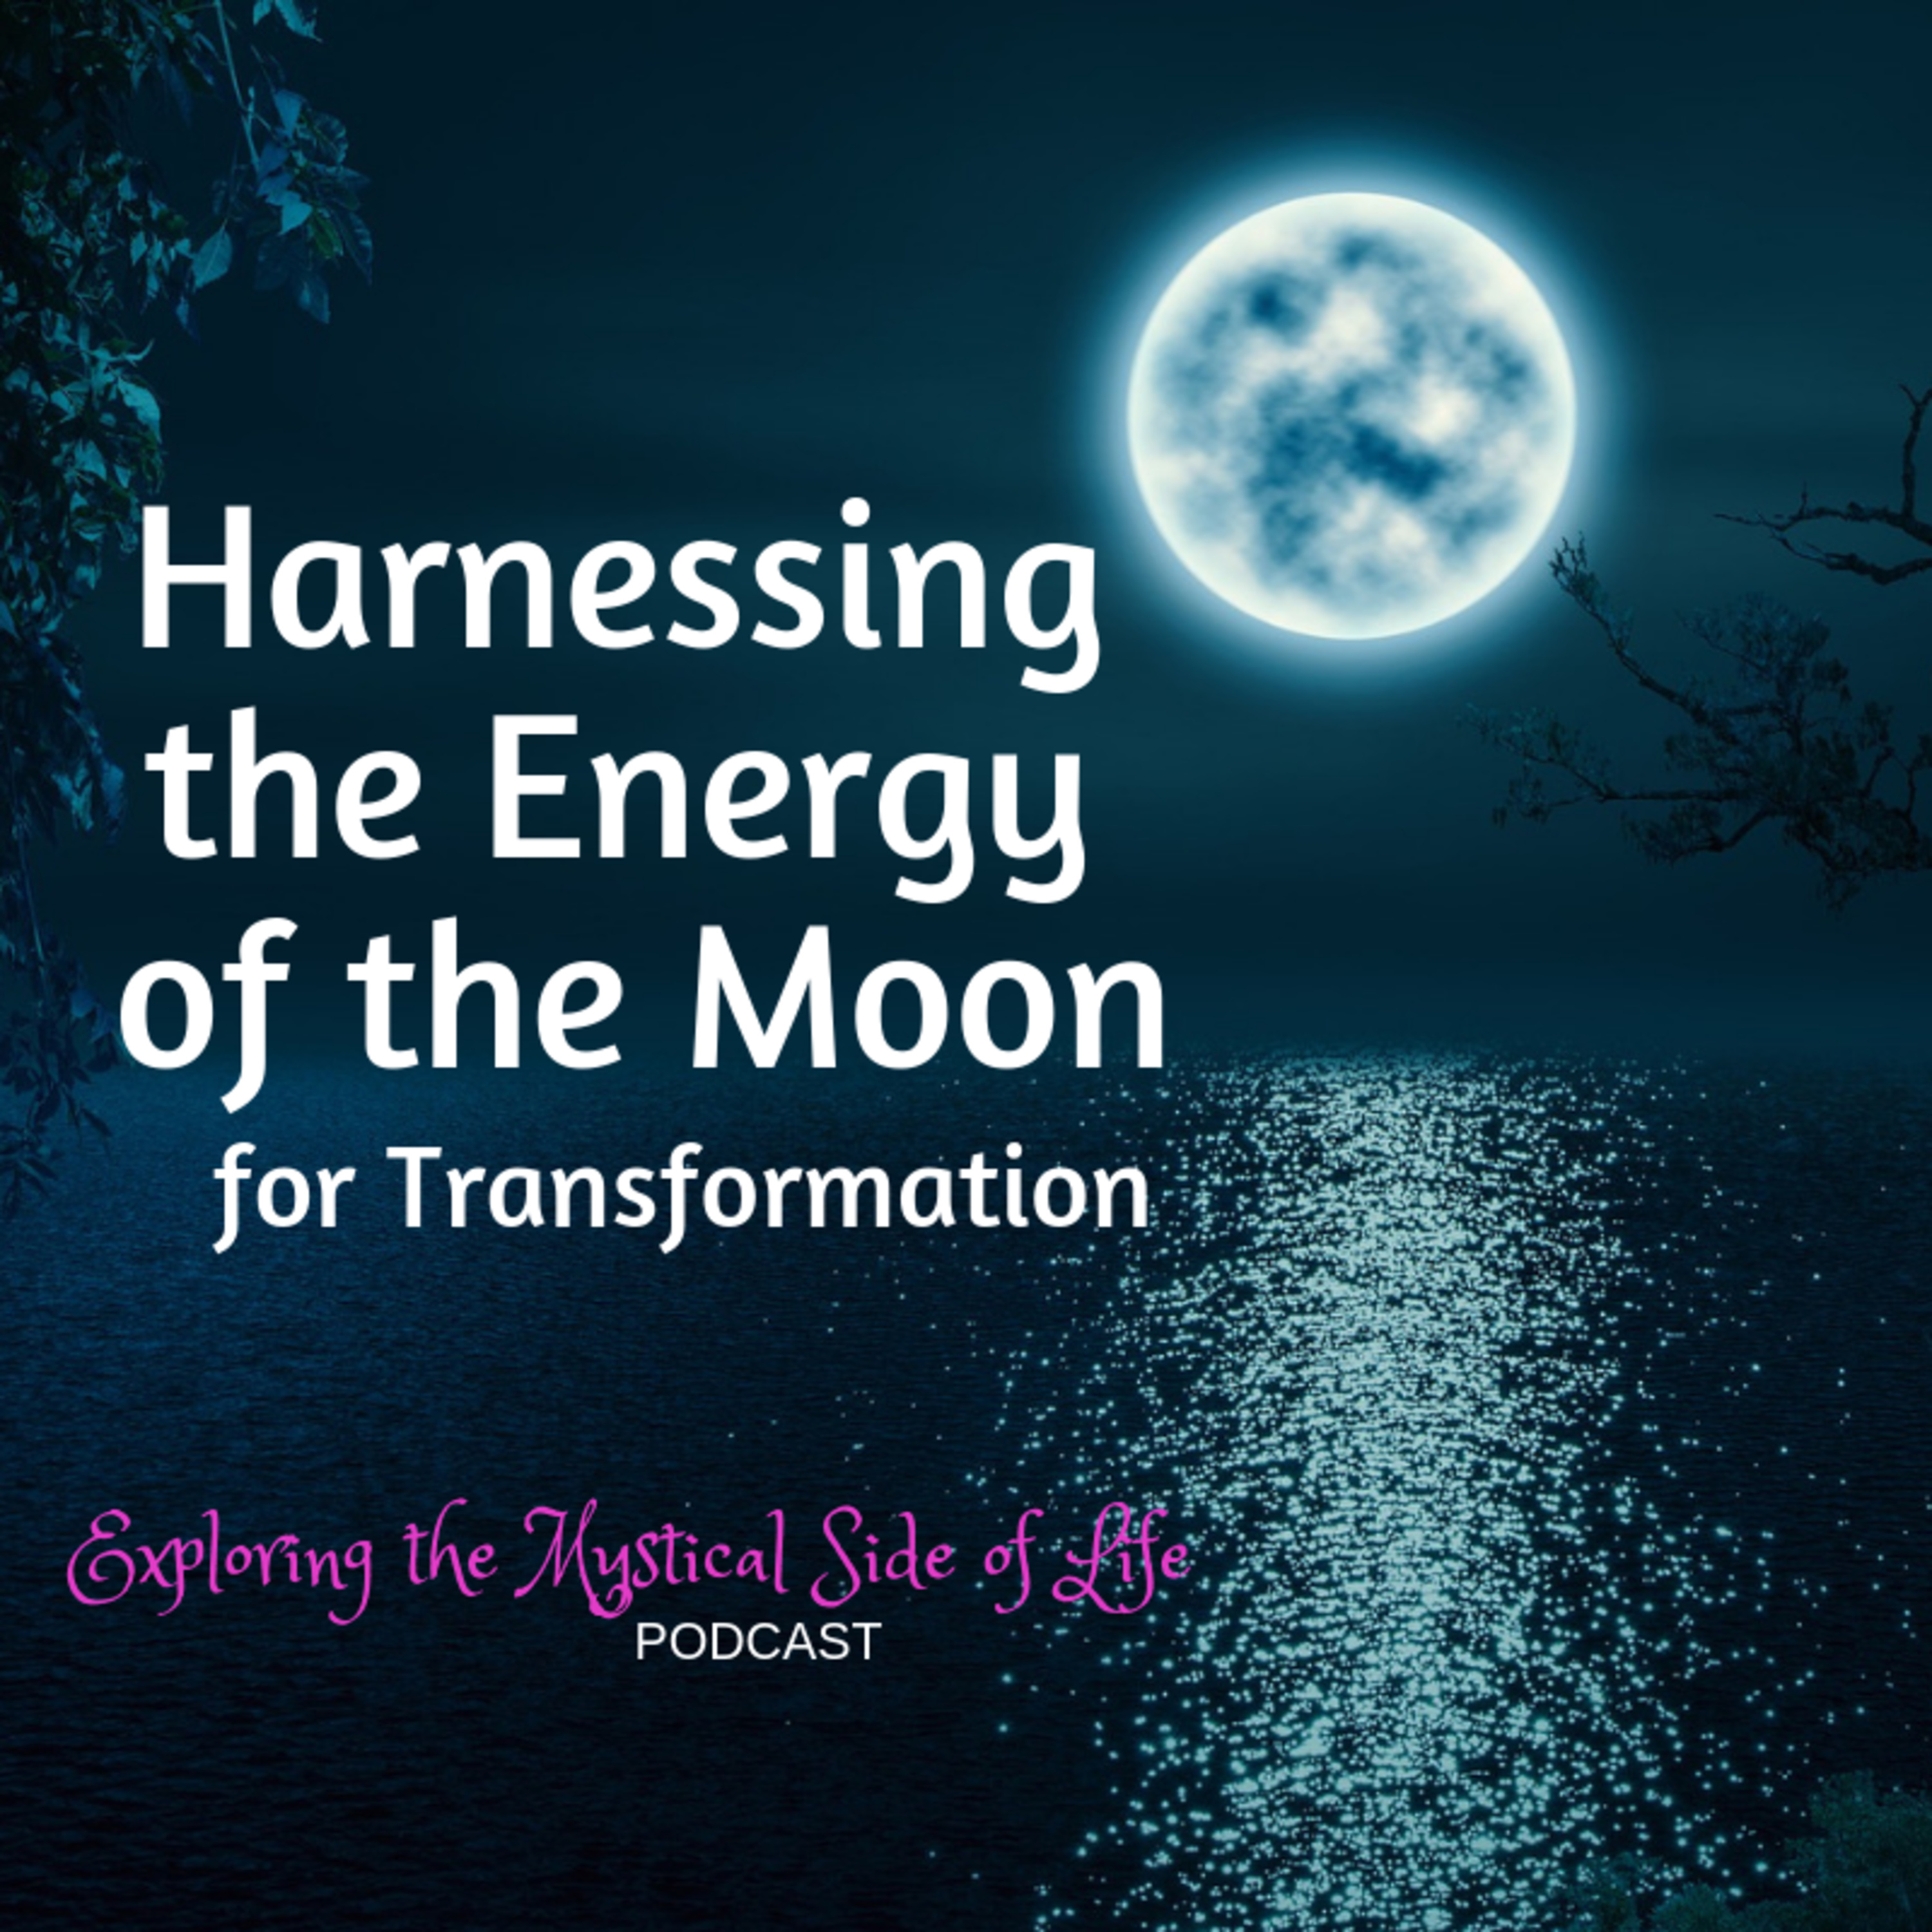 Harnessing the Energy of the Moon for Transformation